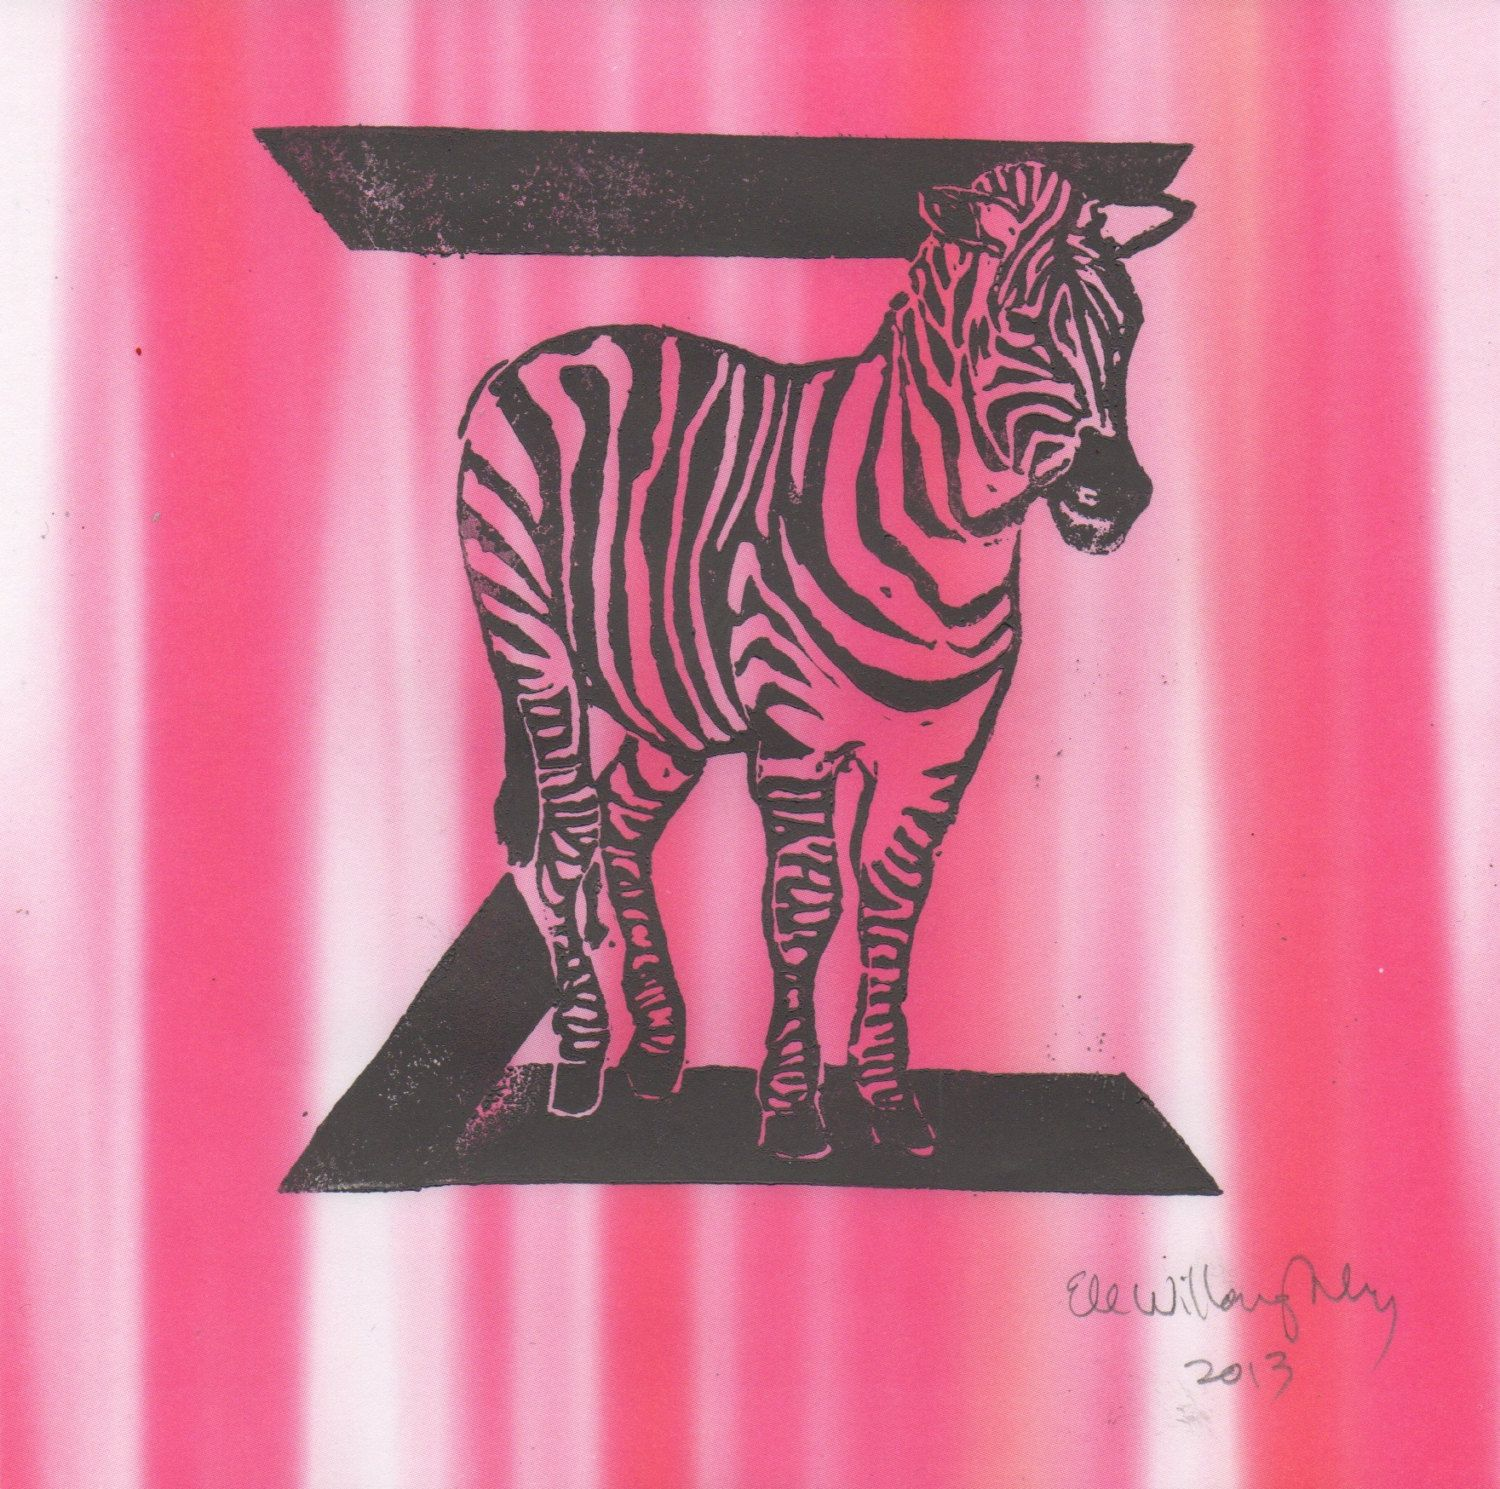 New to minouette on Etsy: Zebra Z Monogram Linocut - Alphabet Typographic Lino Block Print with Animals Z is for Zebra (20.00 USD)